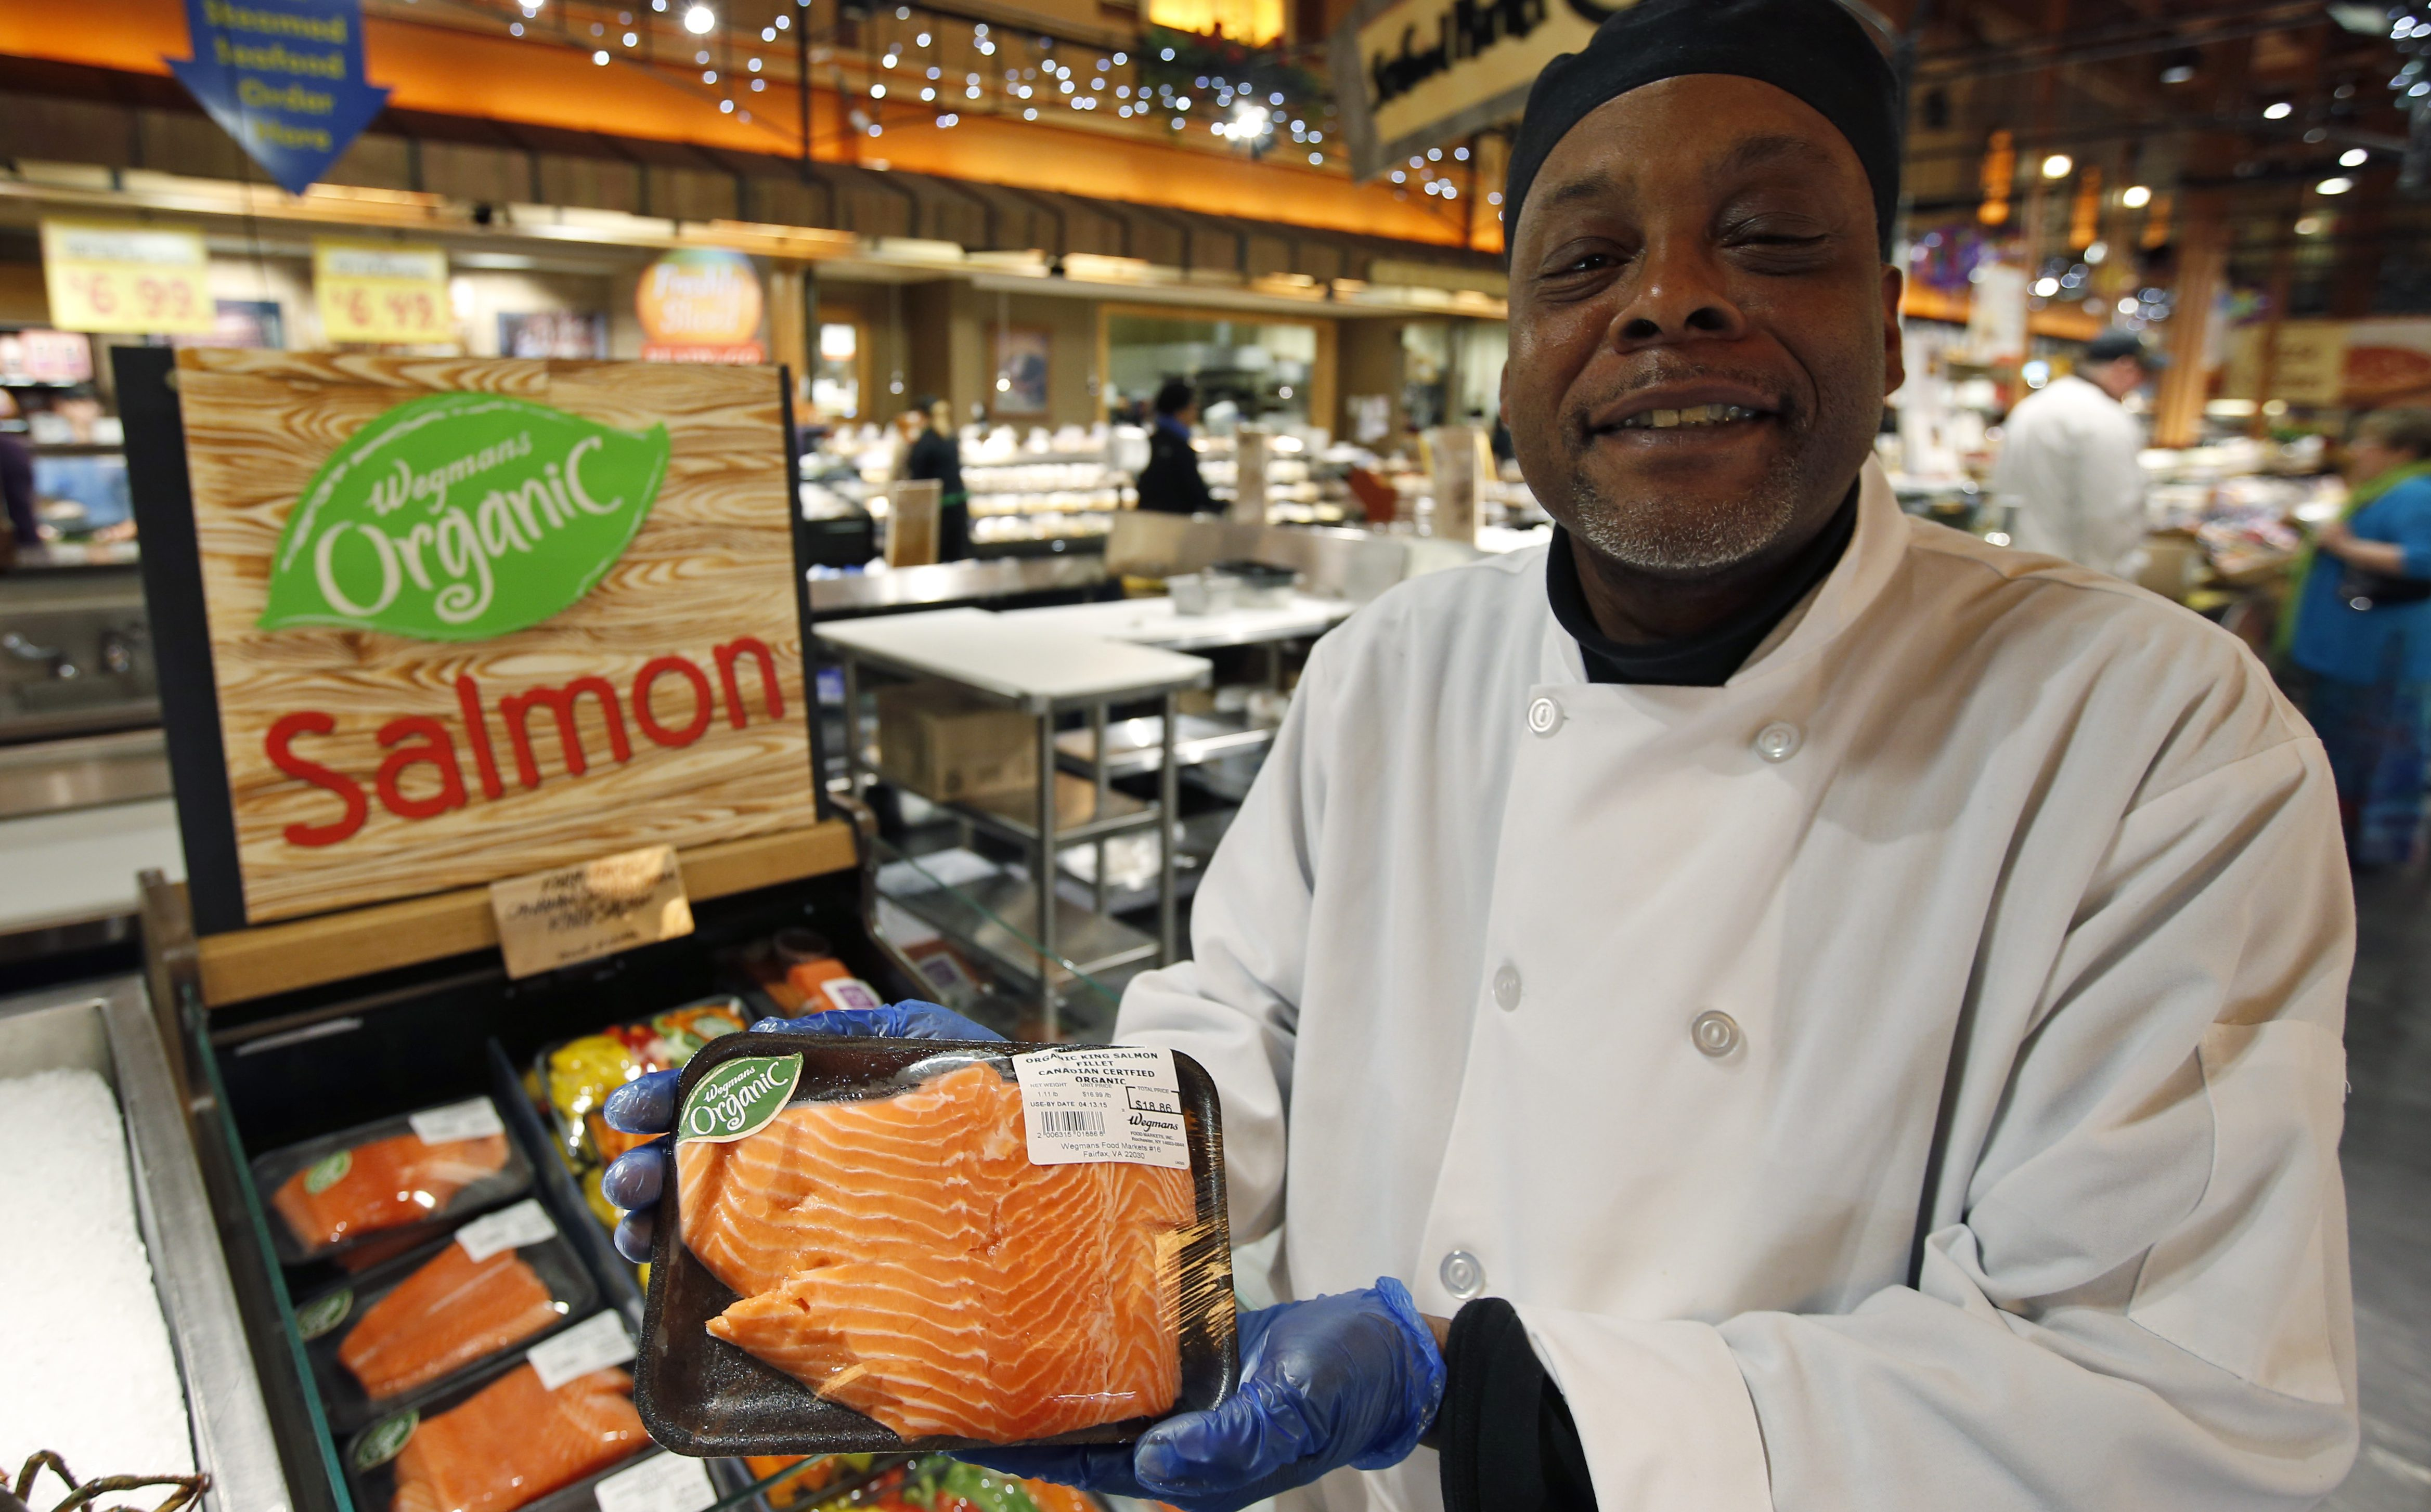 Wegmans is rated one of the best places to work